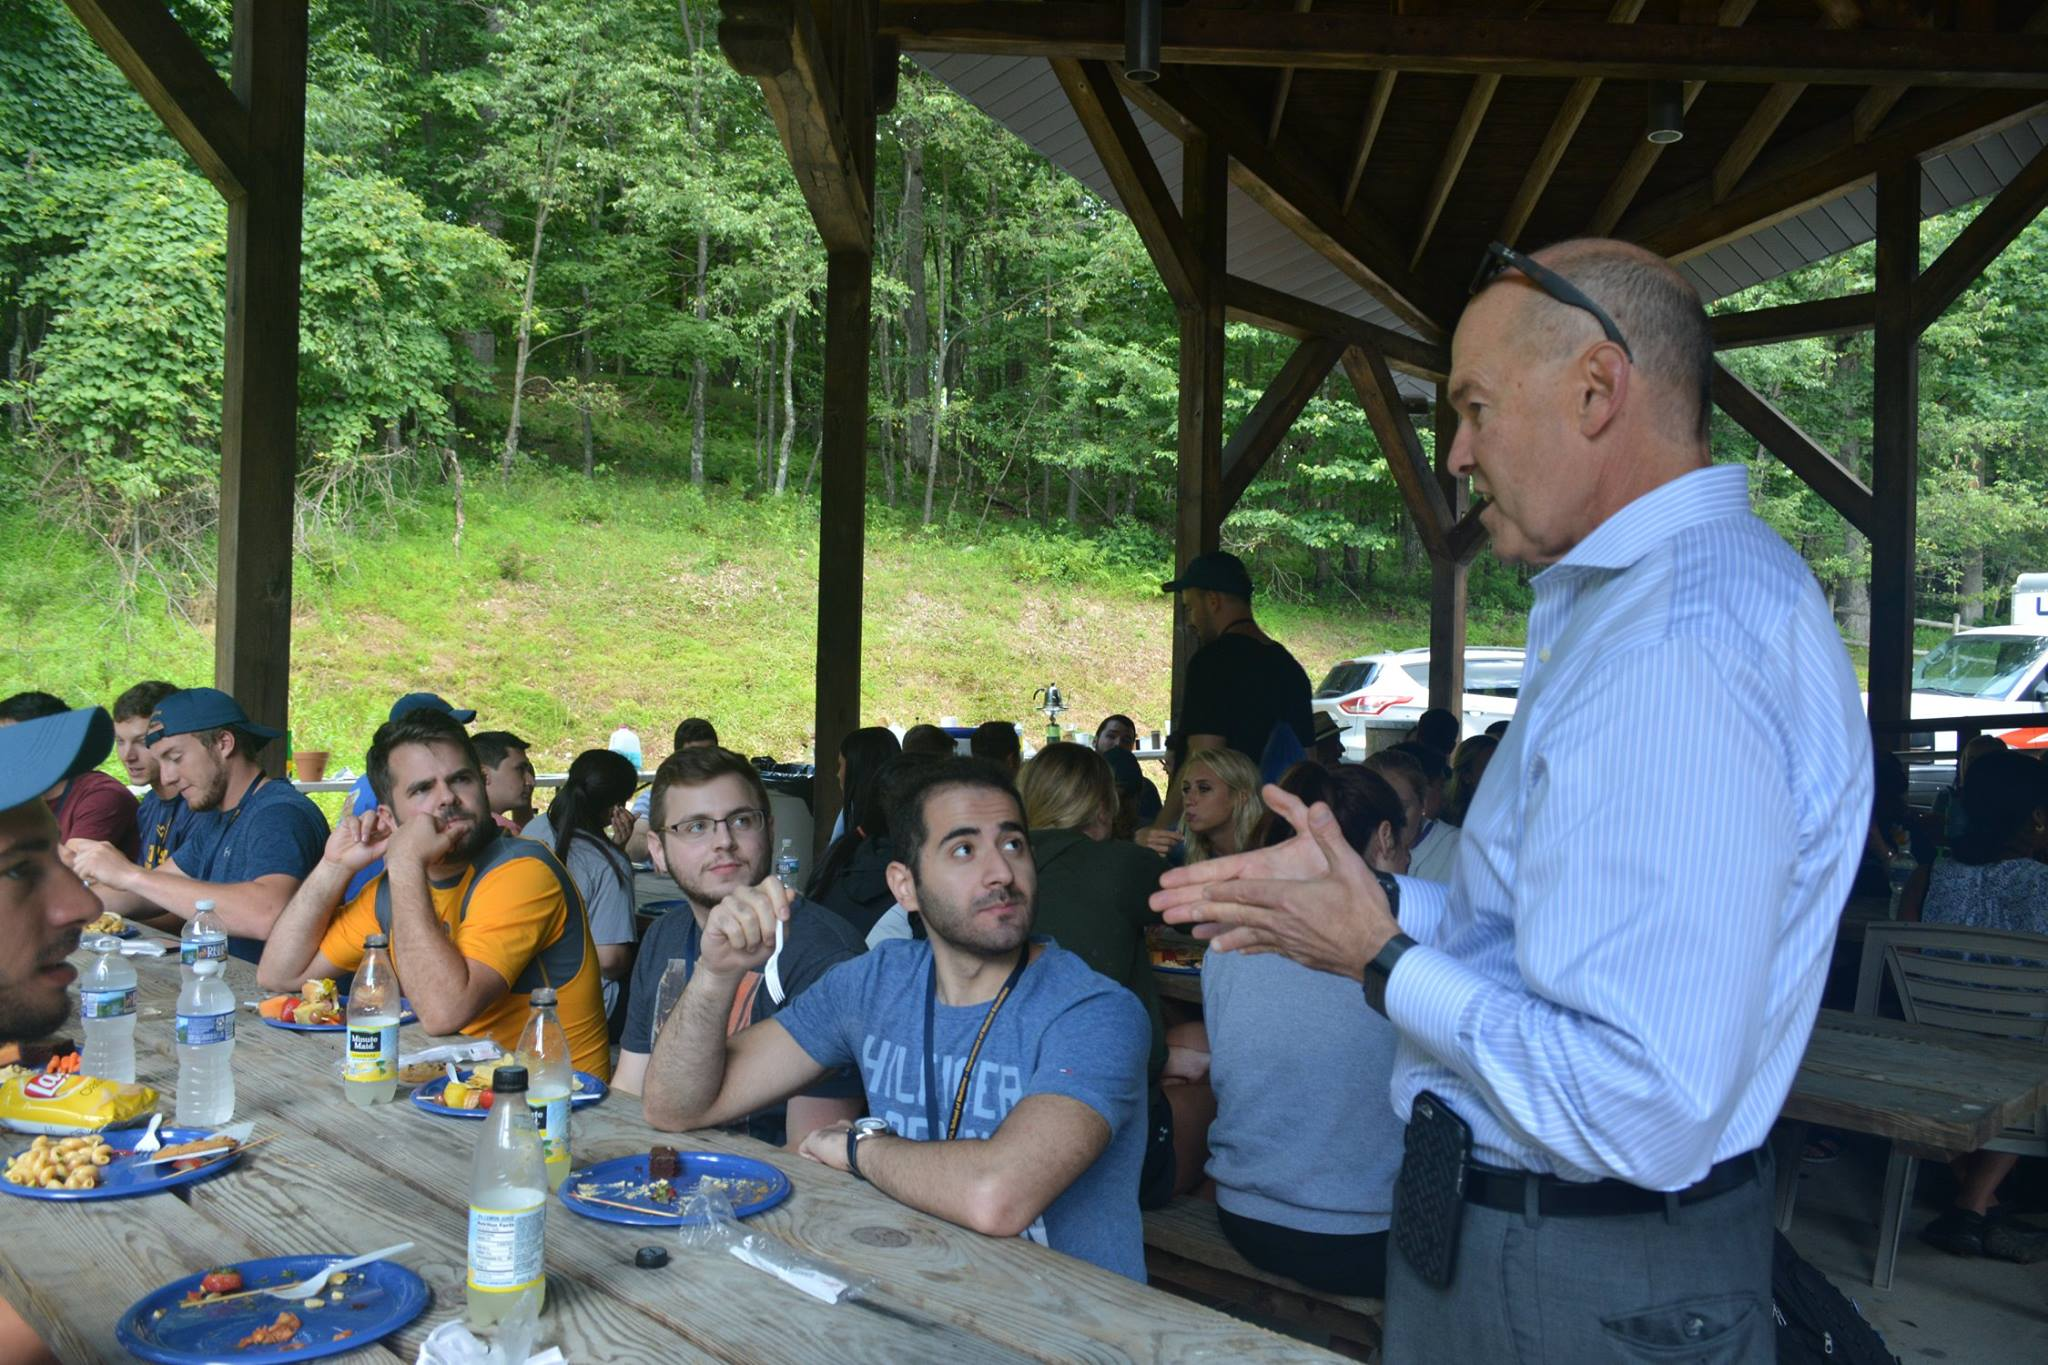 HSC VP Clay Marsh talks with first-year medical students